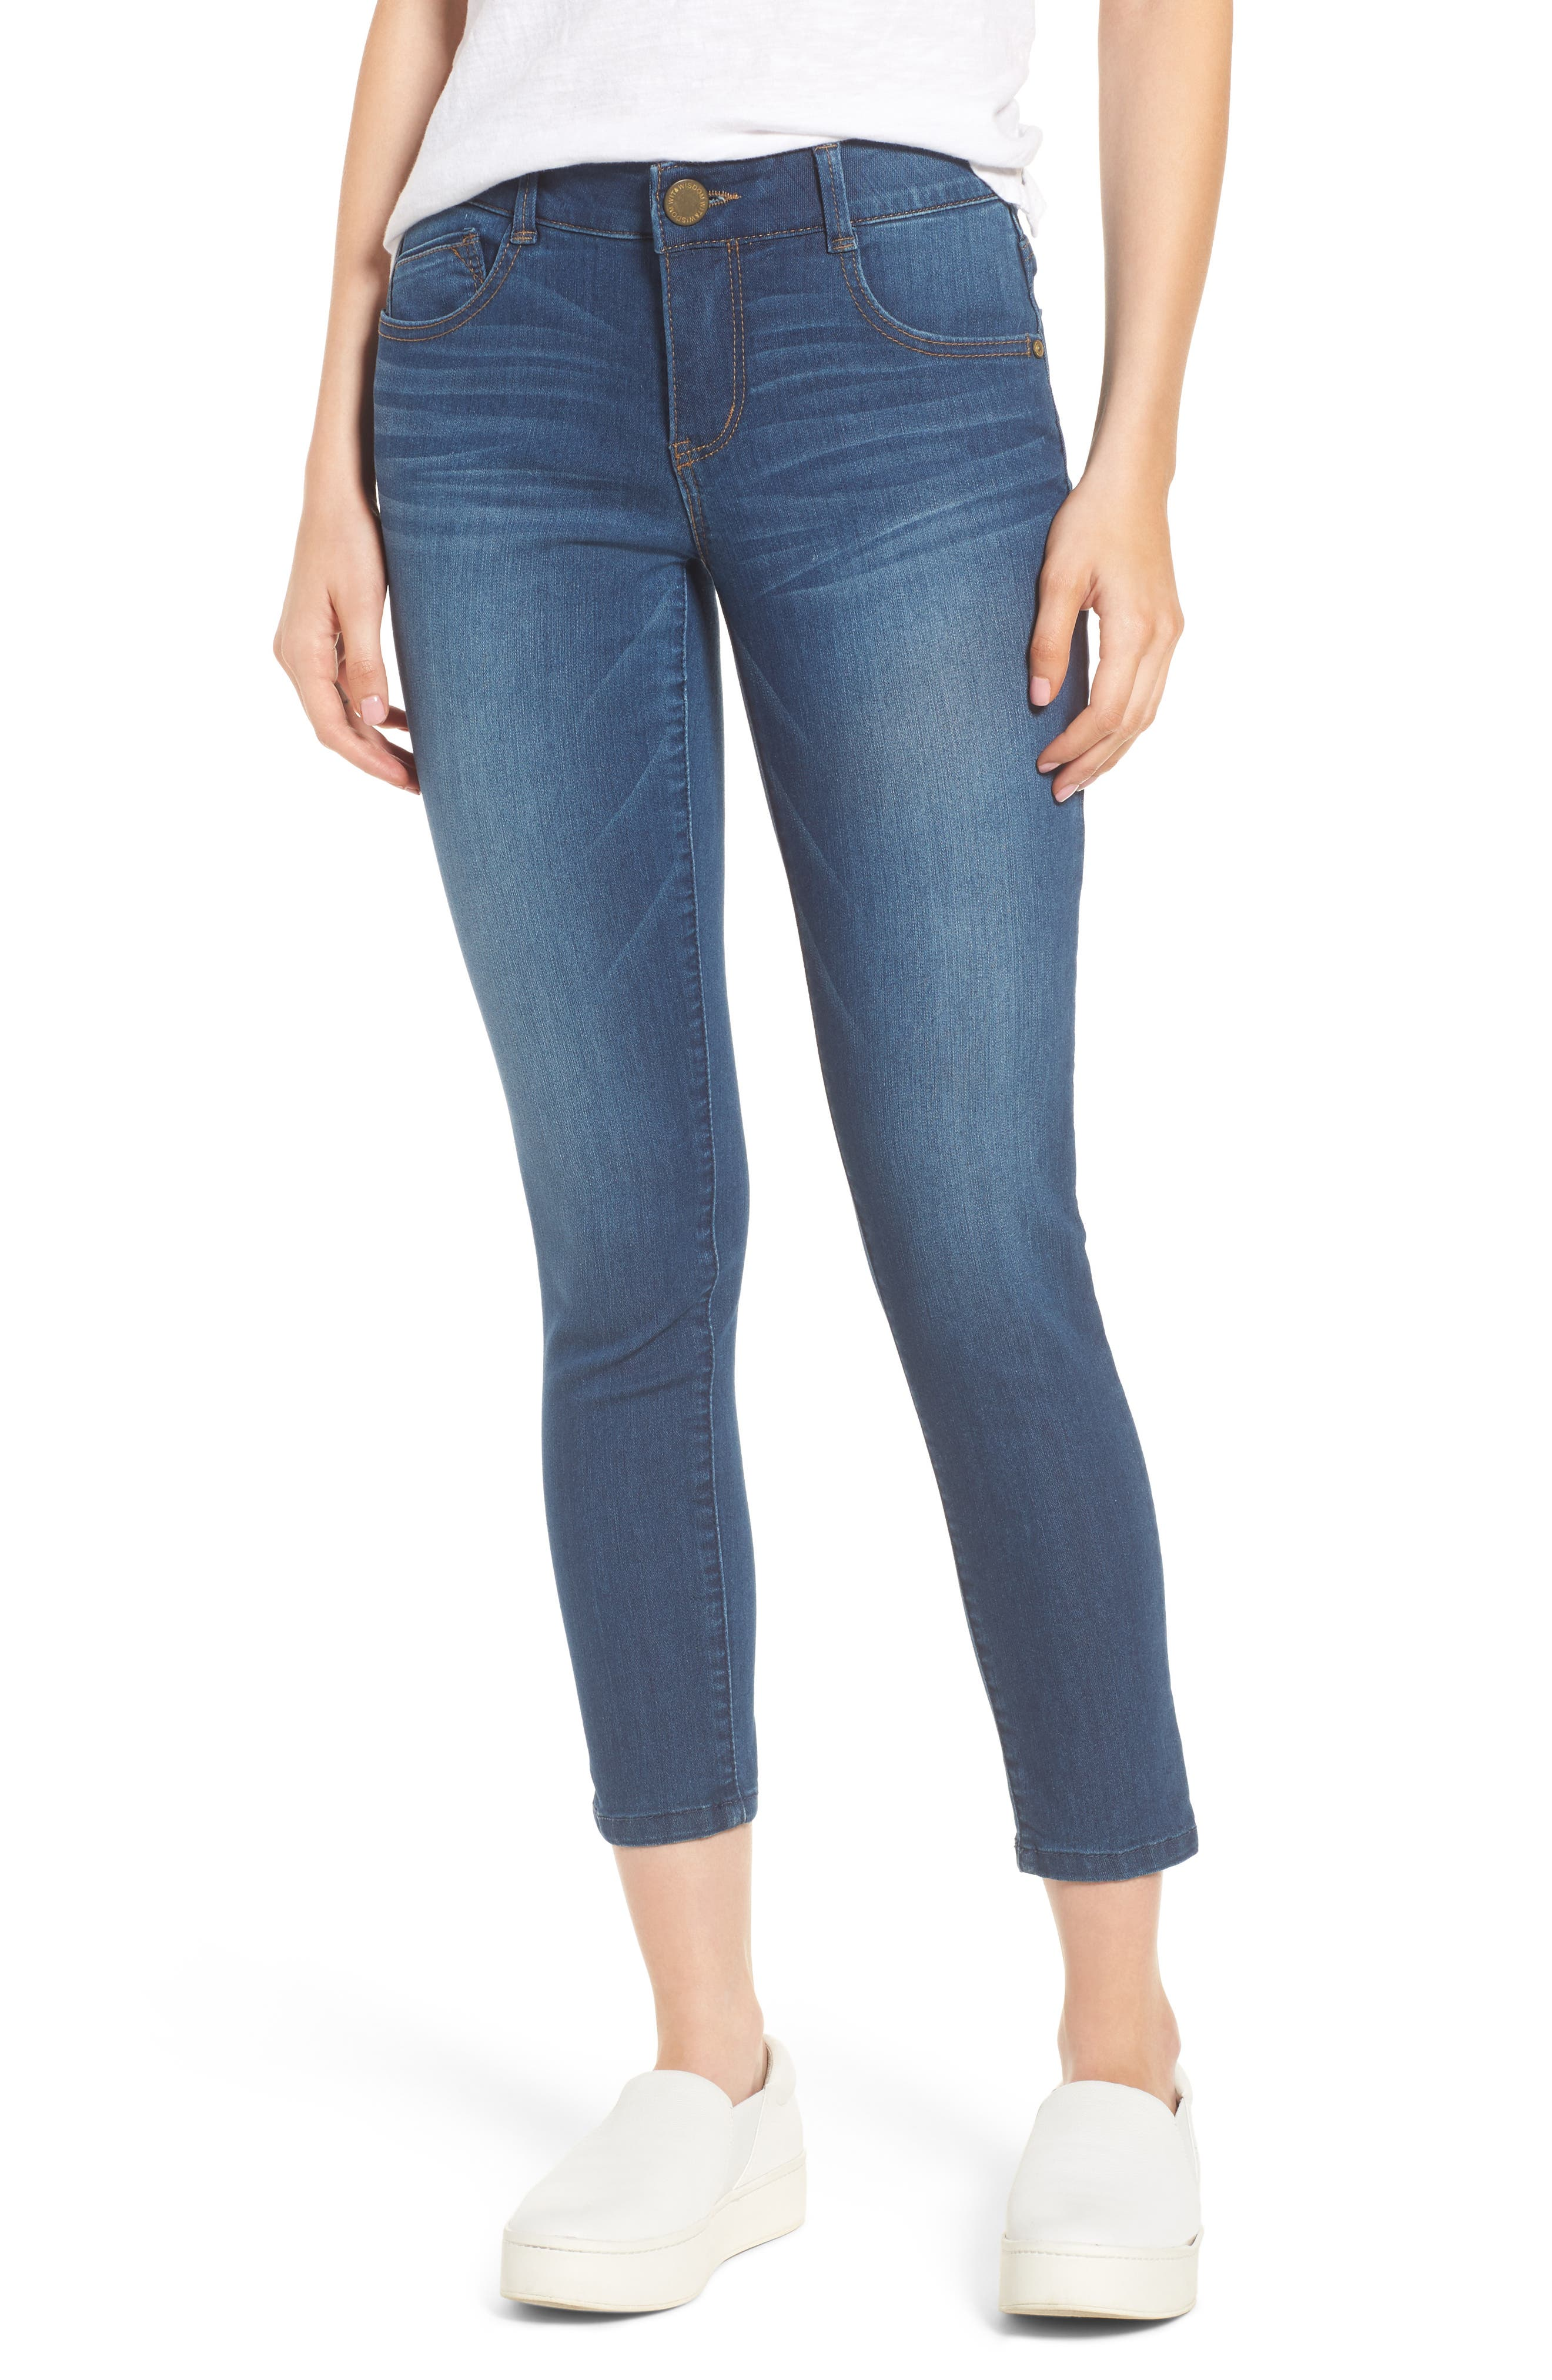 Ab-solution Ankle Skimmer Jeans,                             Main thumbnail 1, color,                             Blue